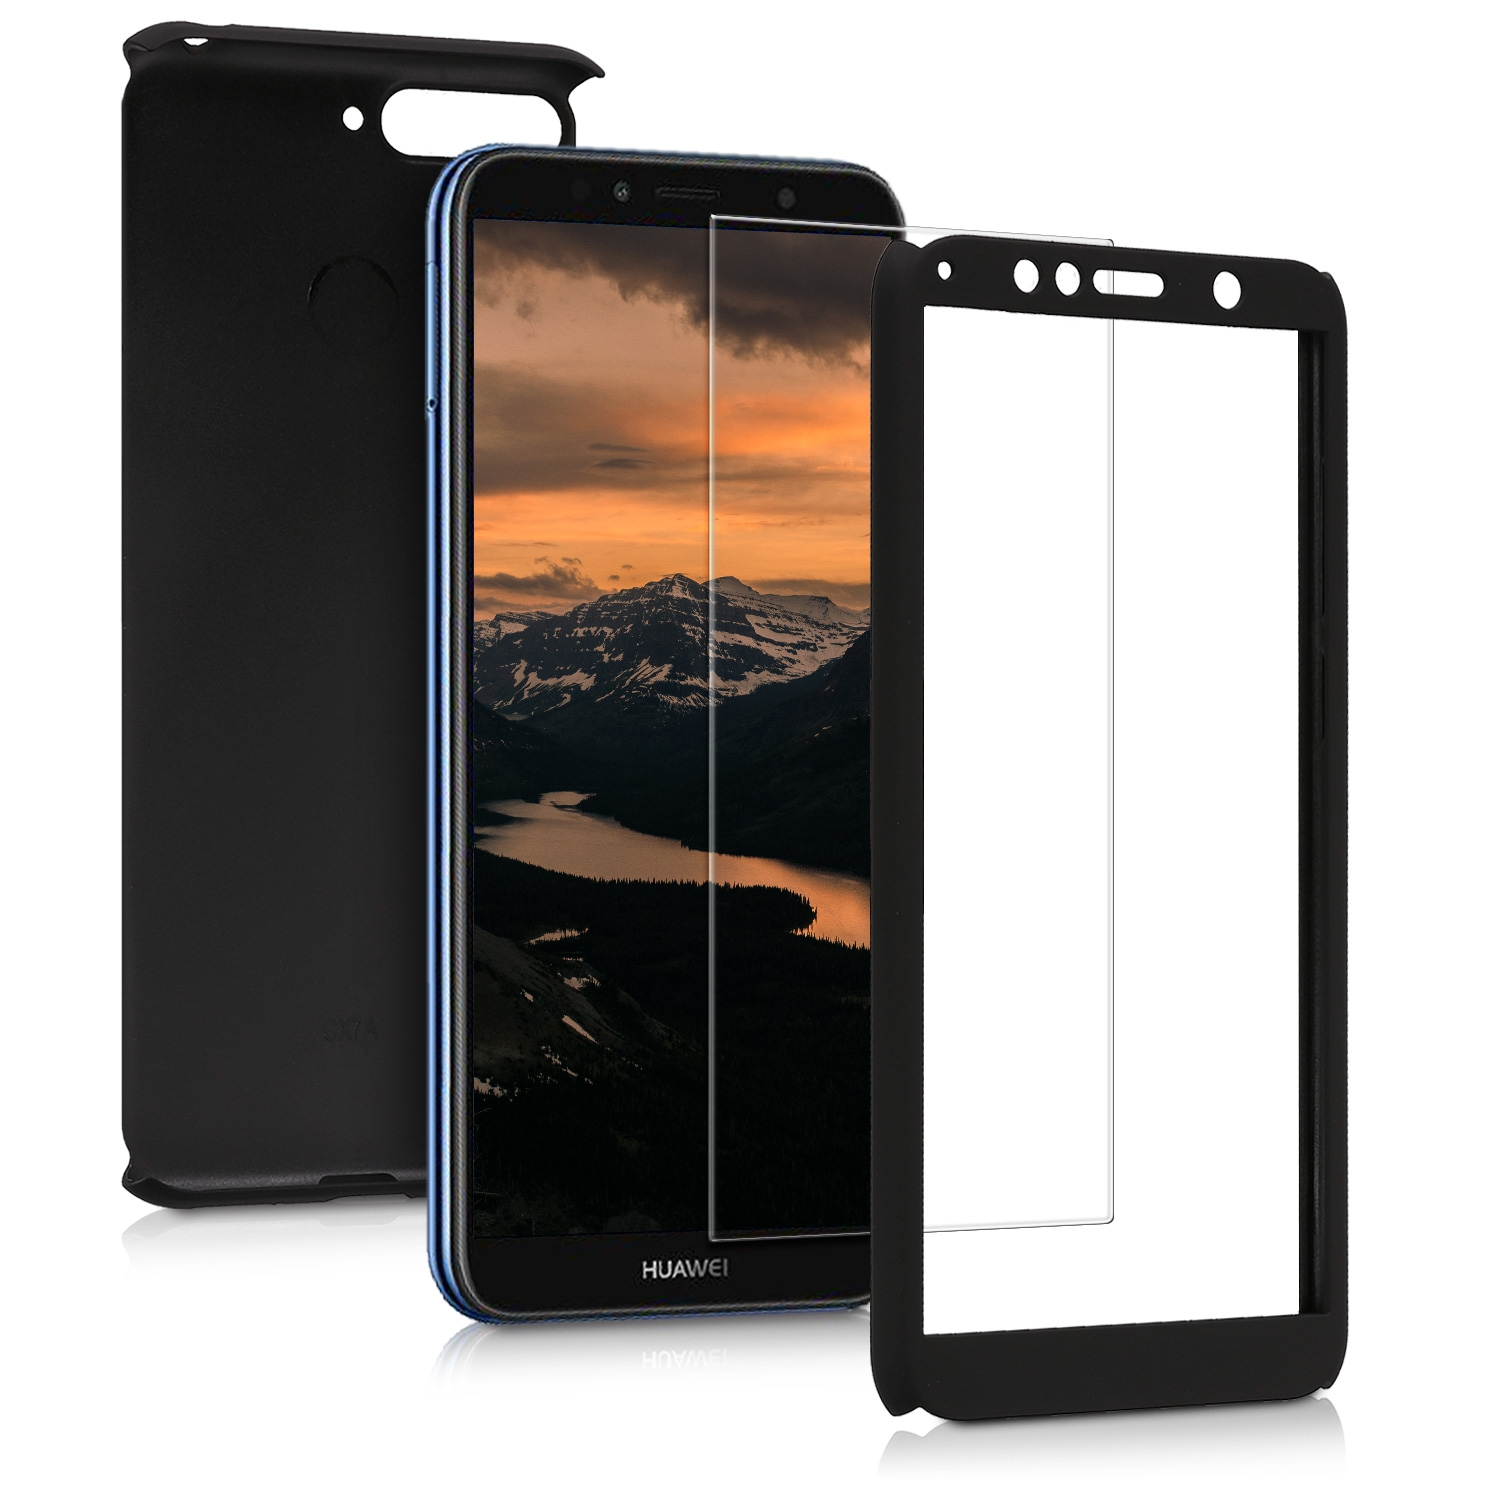 KW Θήκη Full Body για Huawei Y6 2018 & Tempered Glass - Black (45639.68)